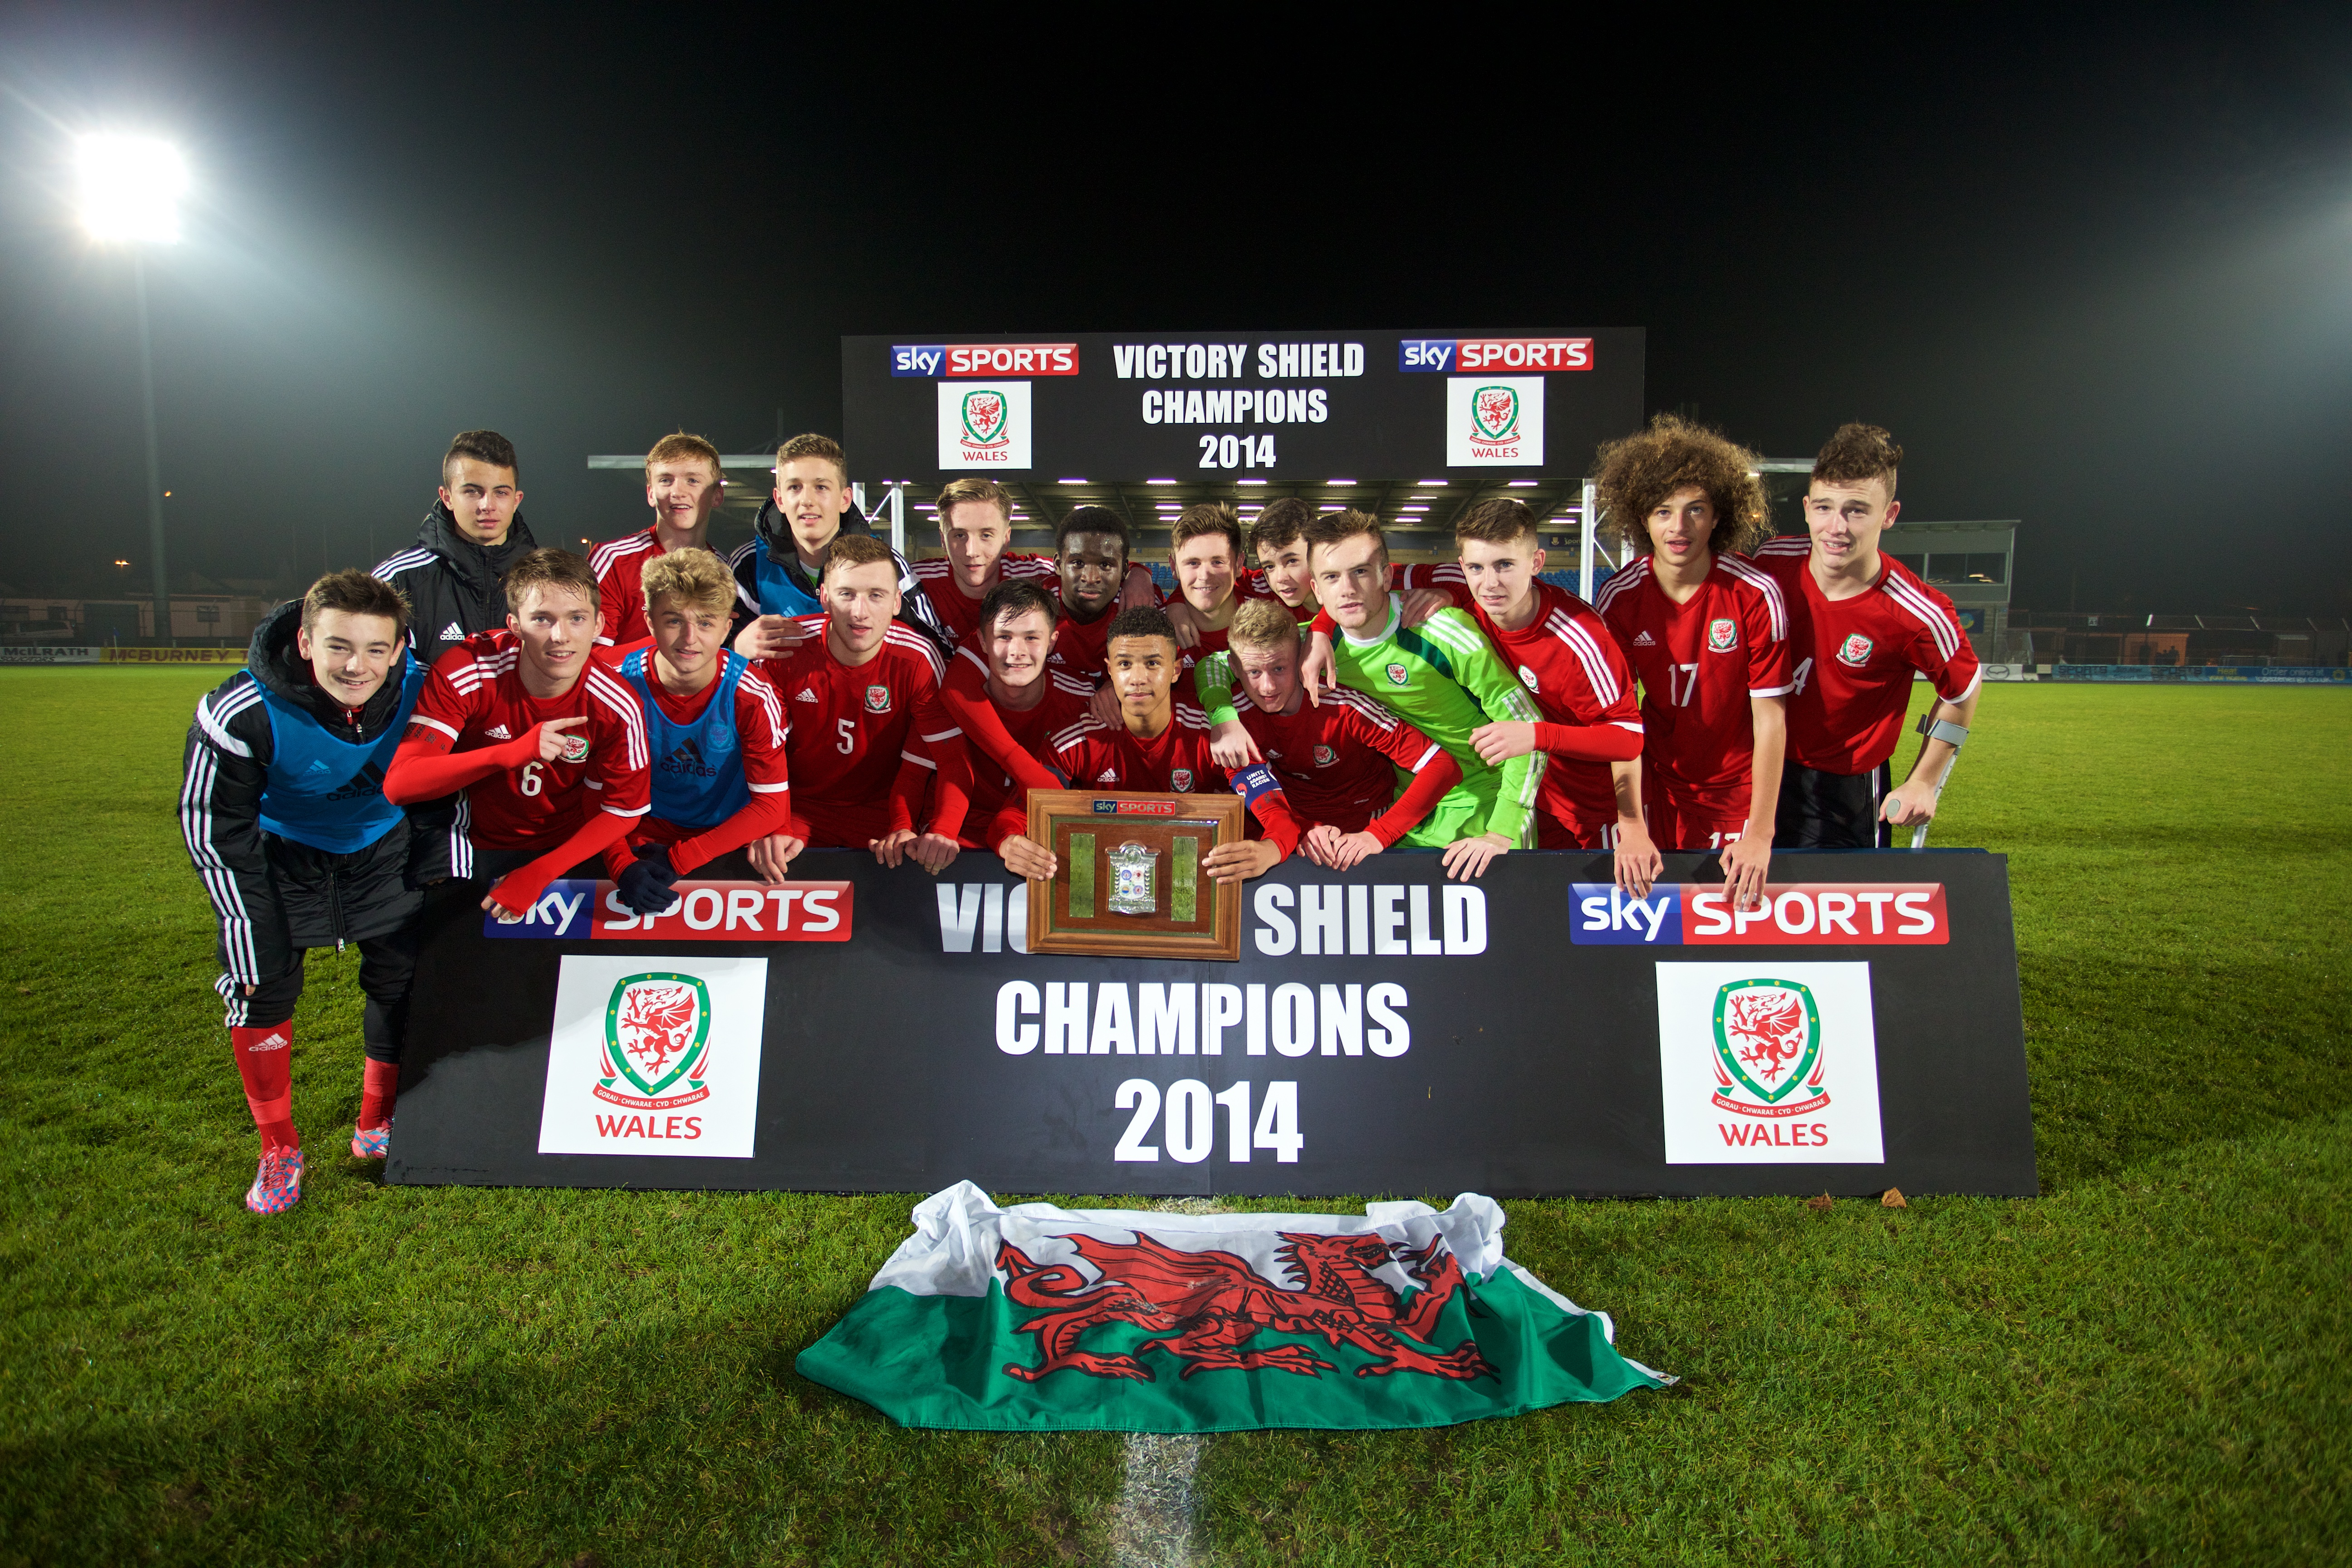 Wales to host U16 Victory Shield Tournament